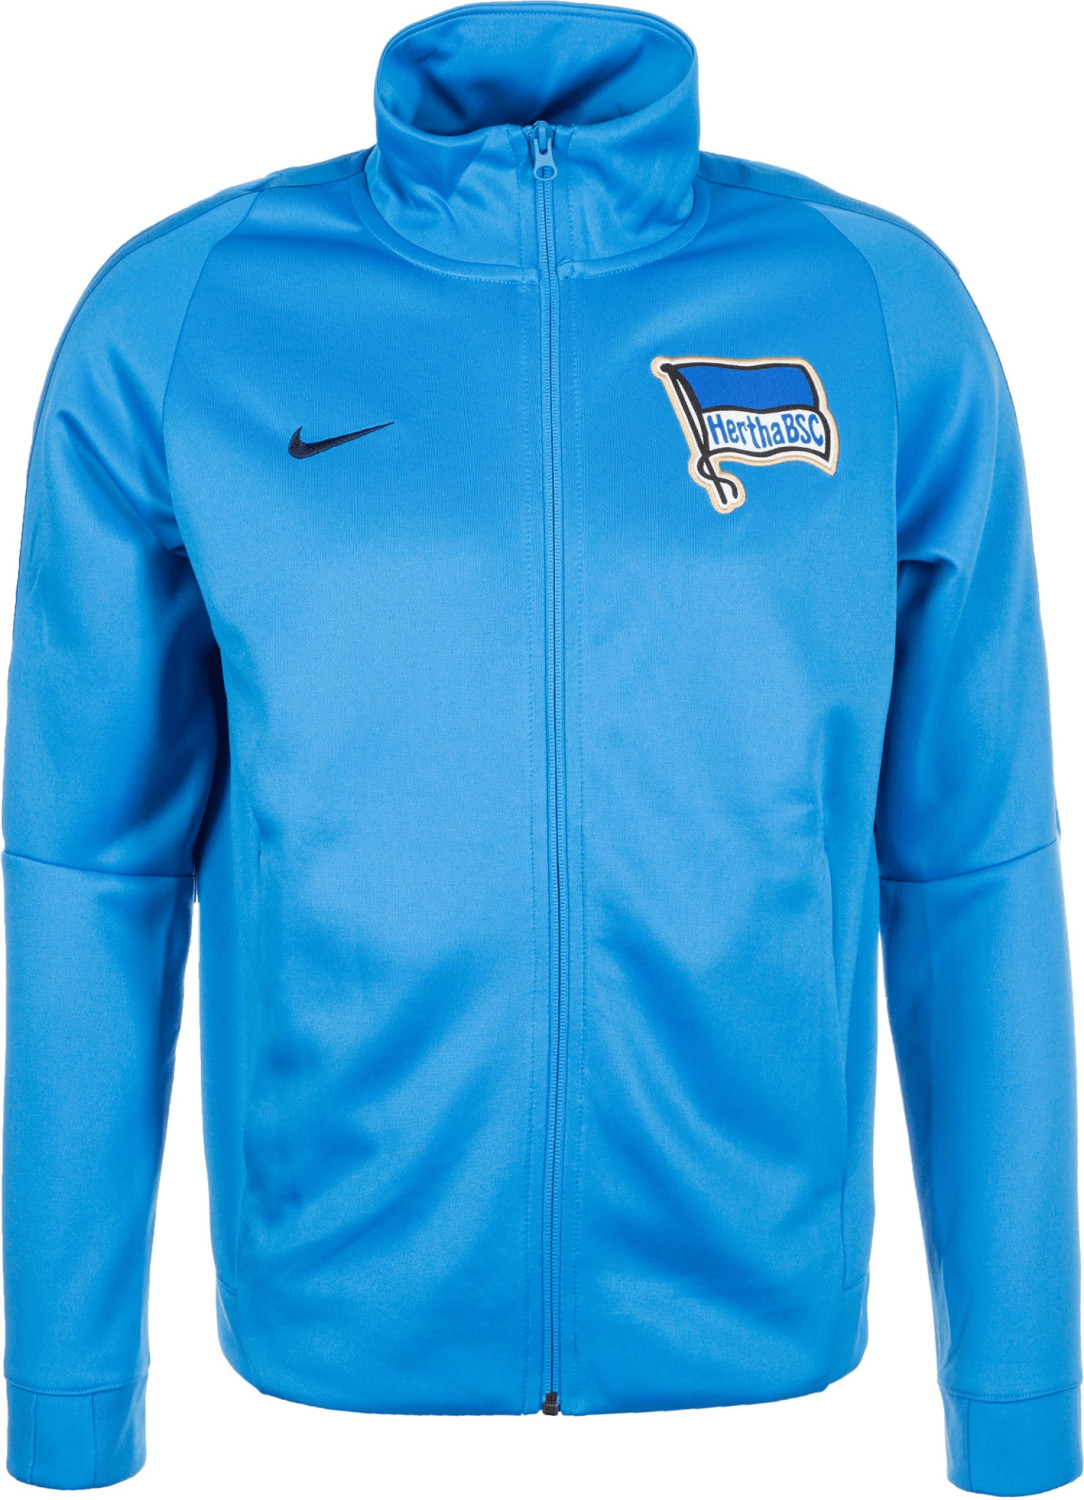 Nike Hertha BSC Authentic Franchise Jacke 2017/...